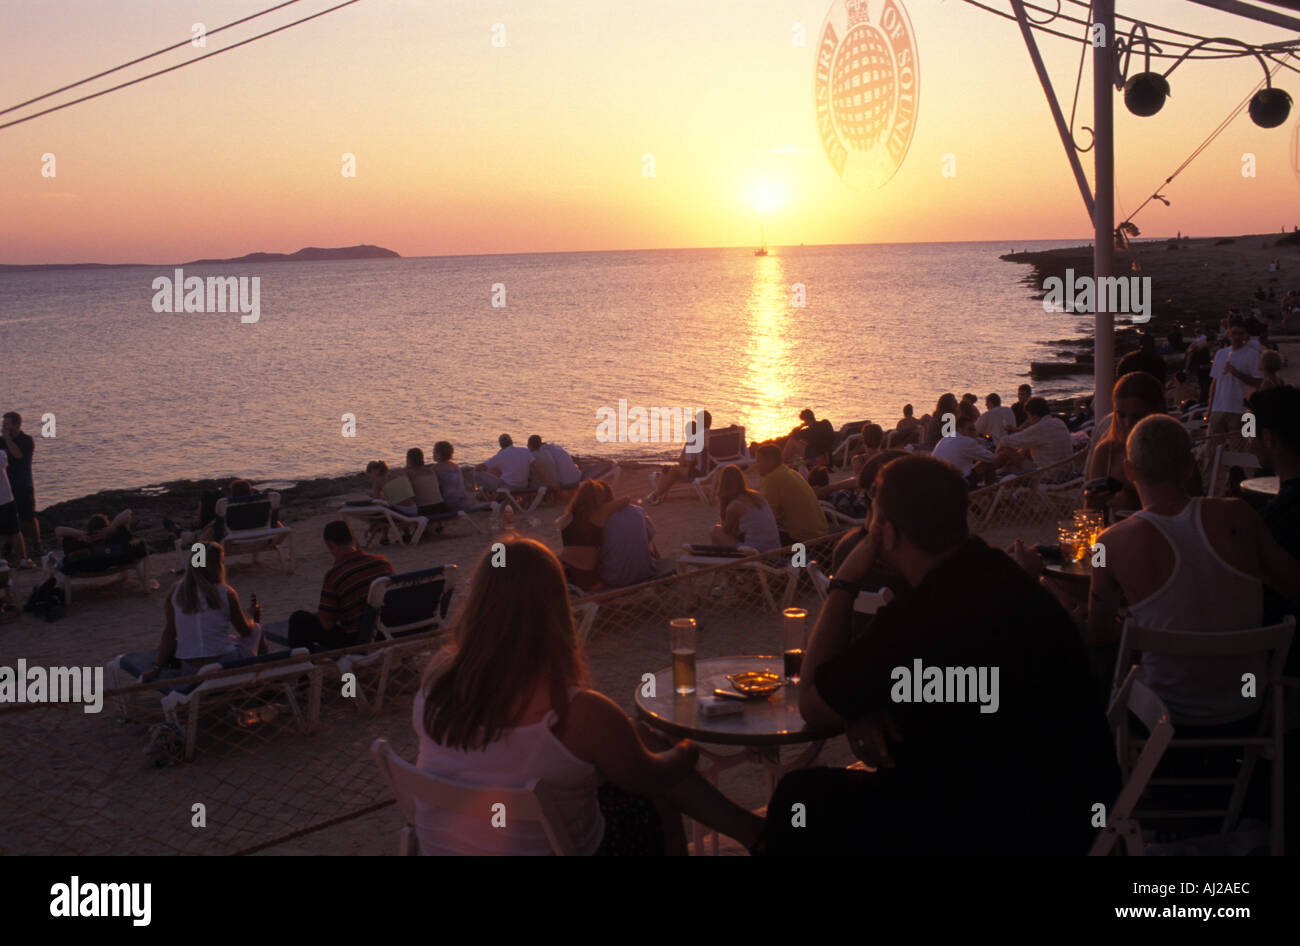 People watching the sun go down on the beach by the Cafe del Mar in San Antonio Ibiza Spain - Stock Image